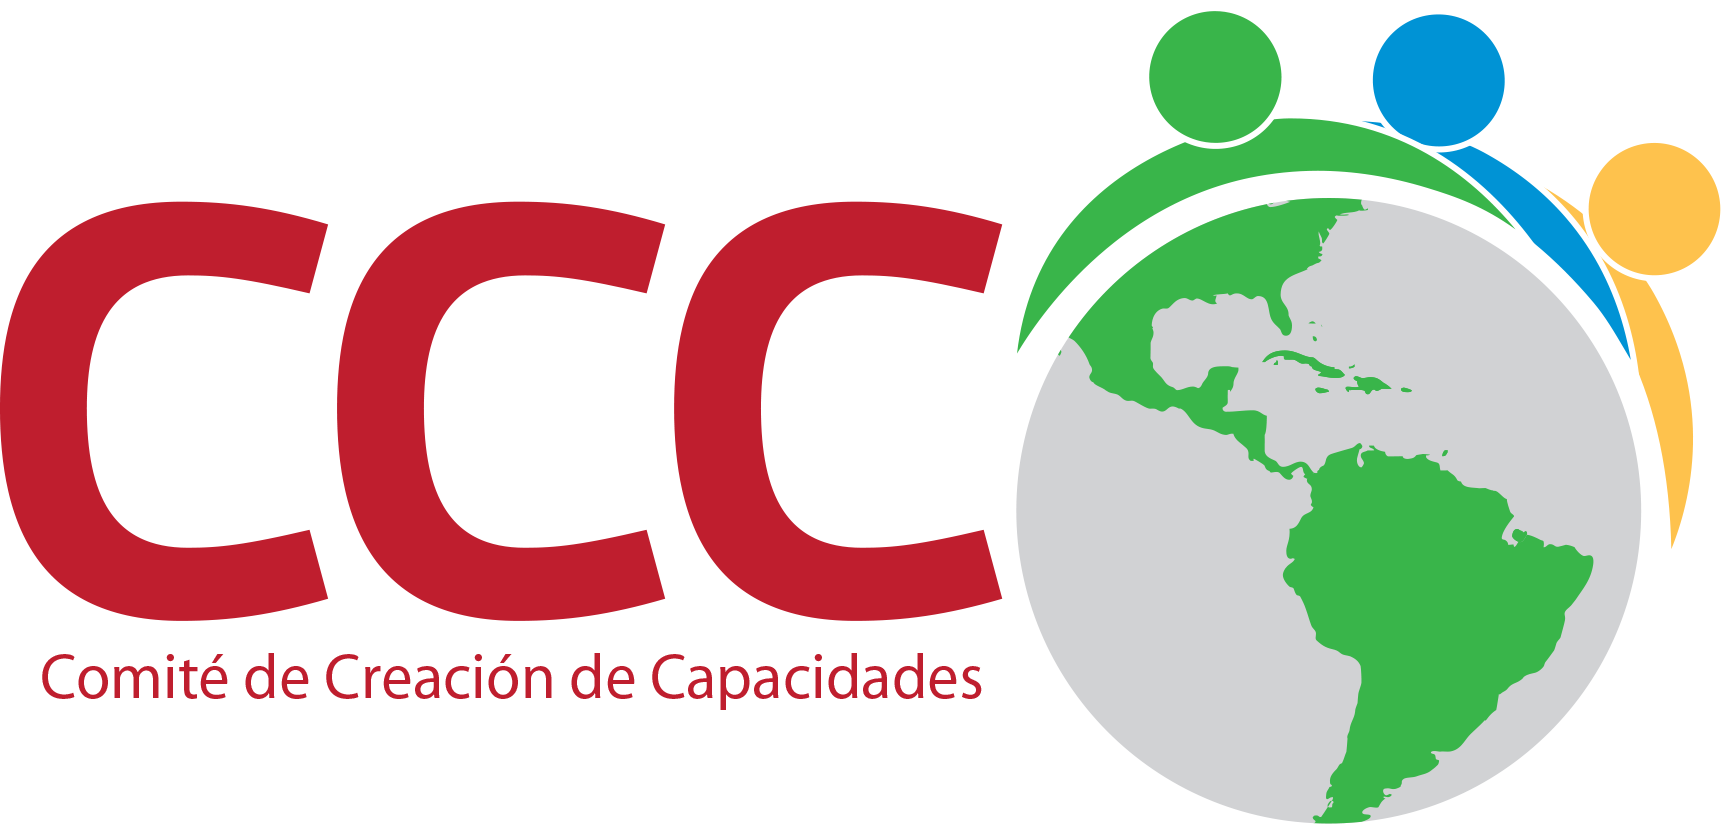 Ccc Calendar 2019 CCC Provides Information on the Virtual Courses Calendar for 2019